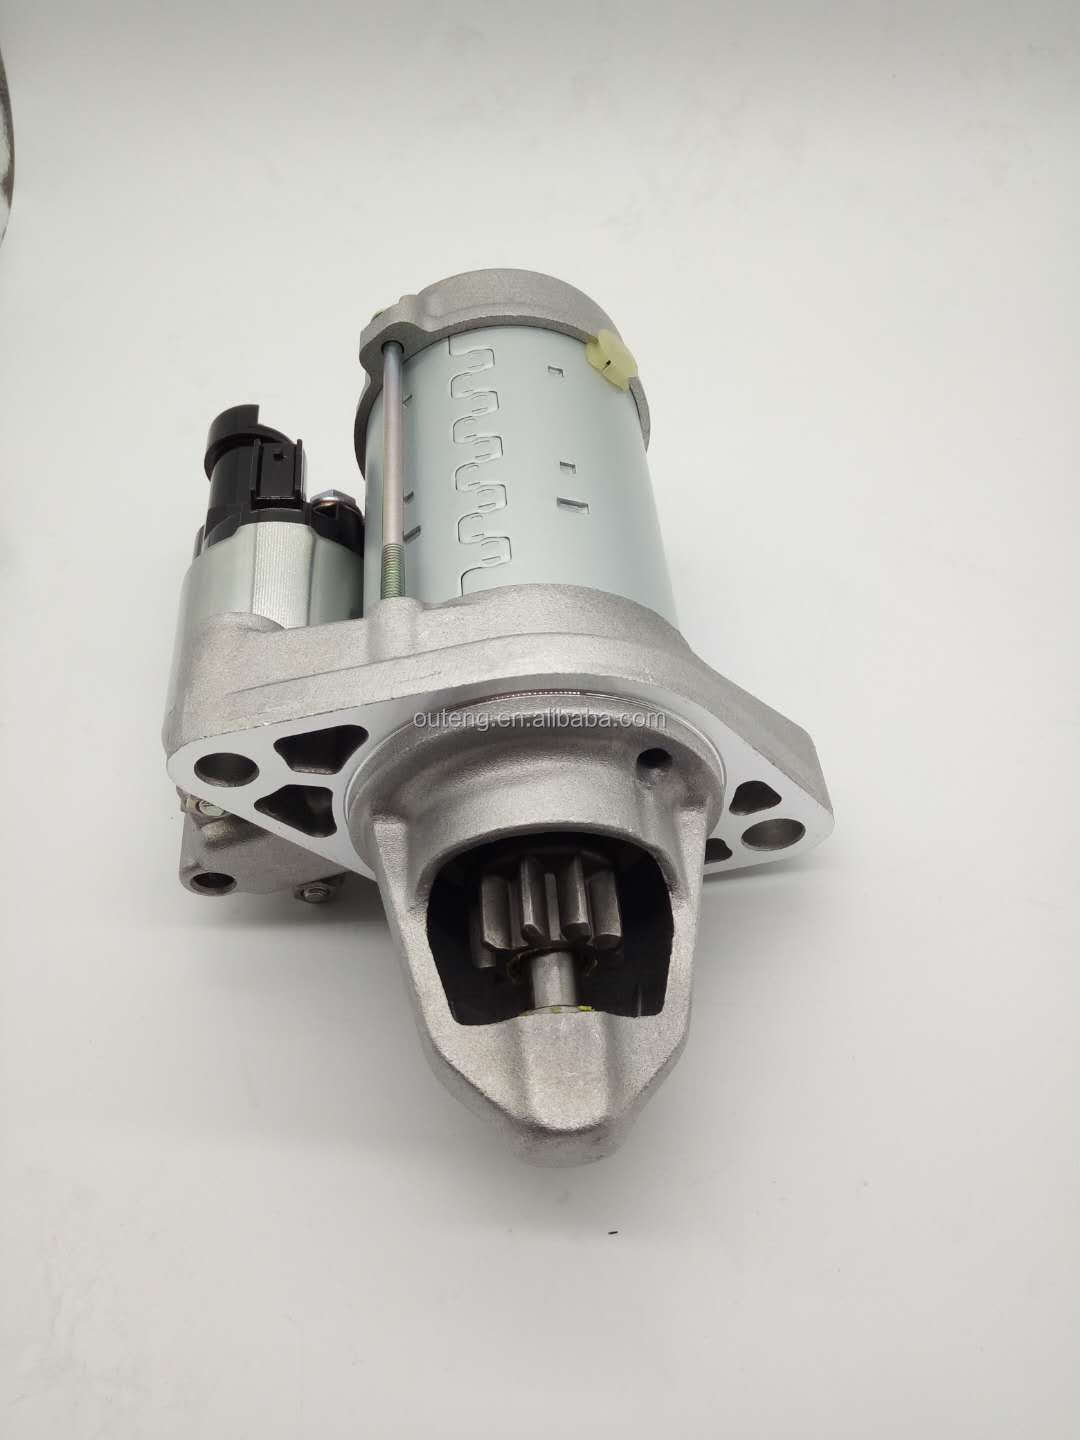 Auto Car parts High quality Starter for Honda Accord 31200-R40-R01